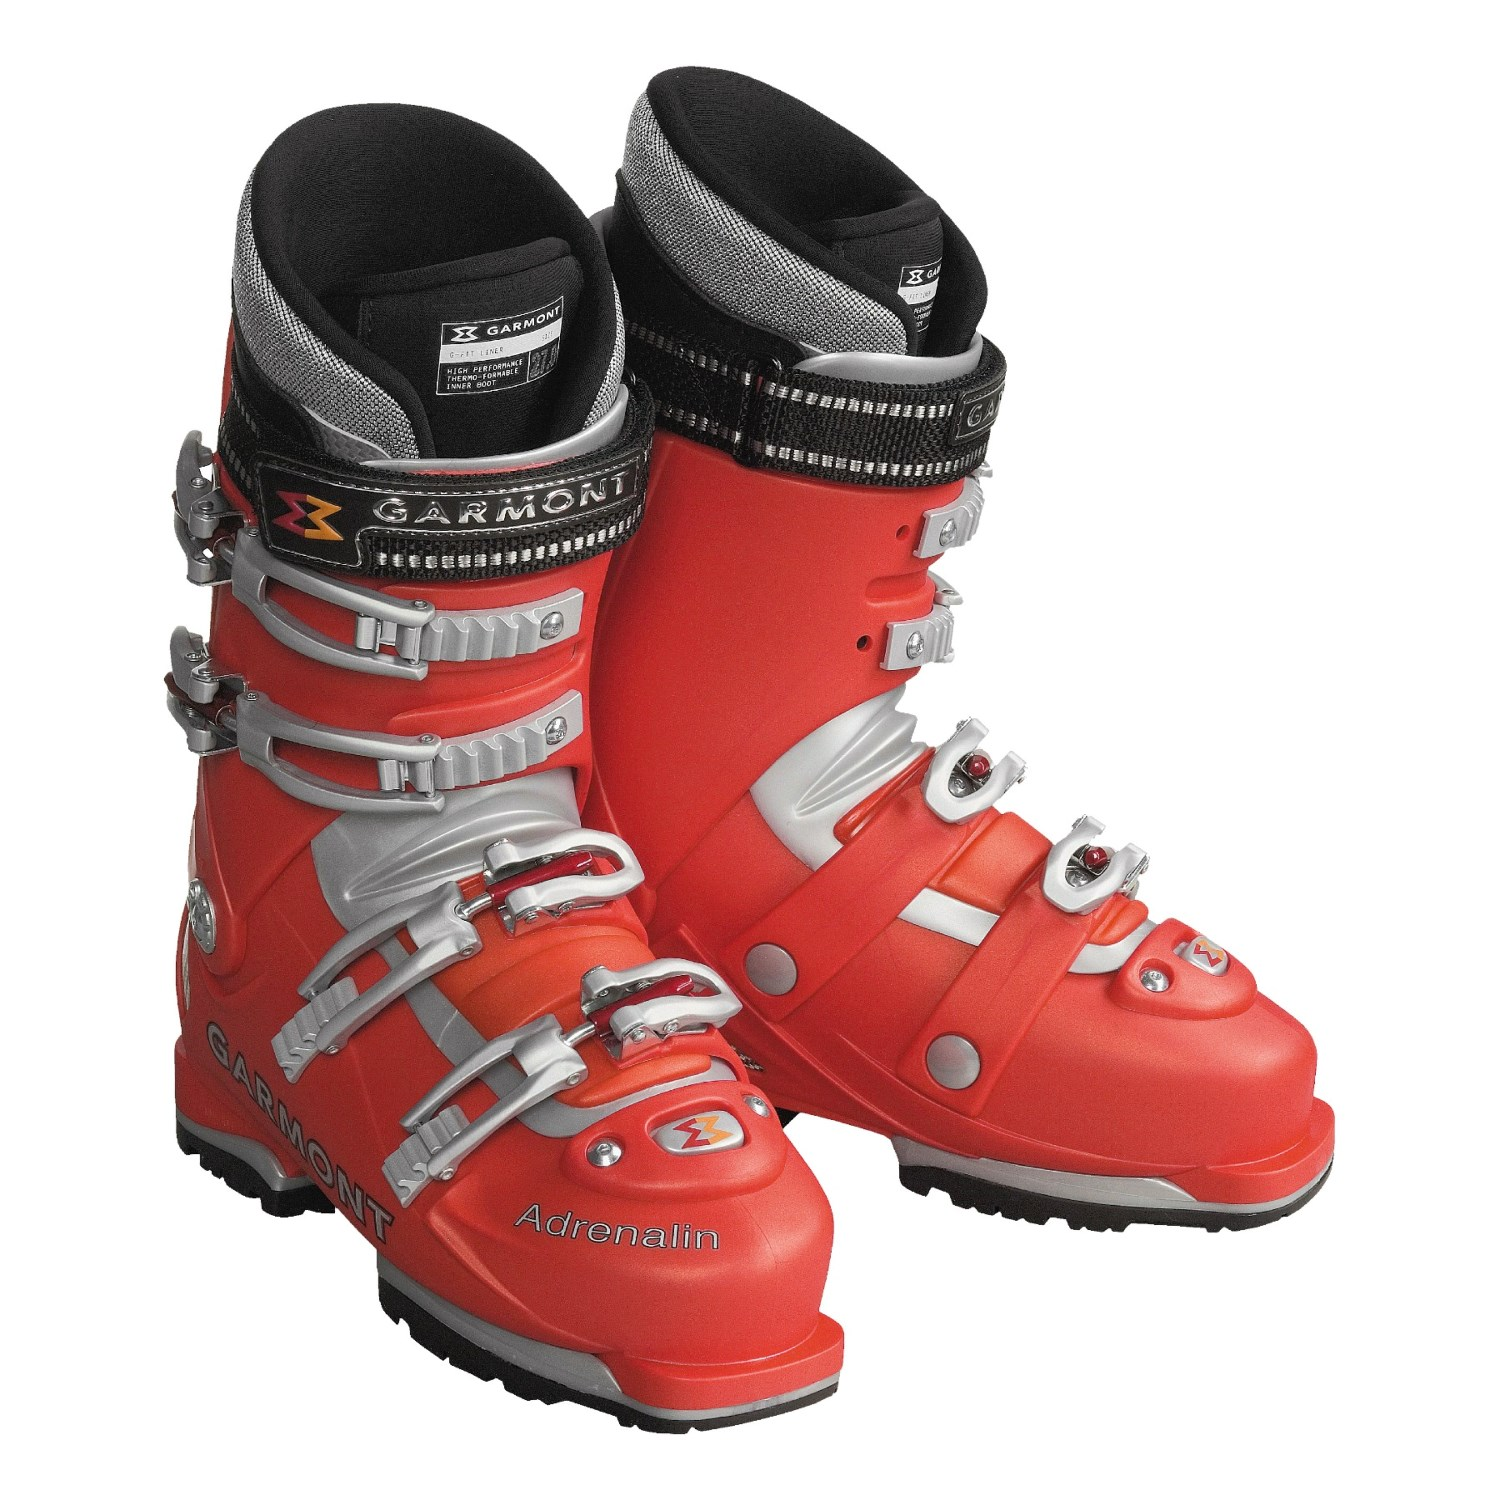 Garmont Adrenalin AT Ski Boots with Thermal-Fit Liners (For Men) in